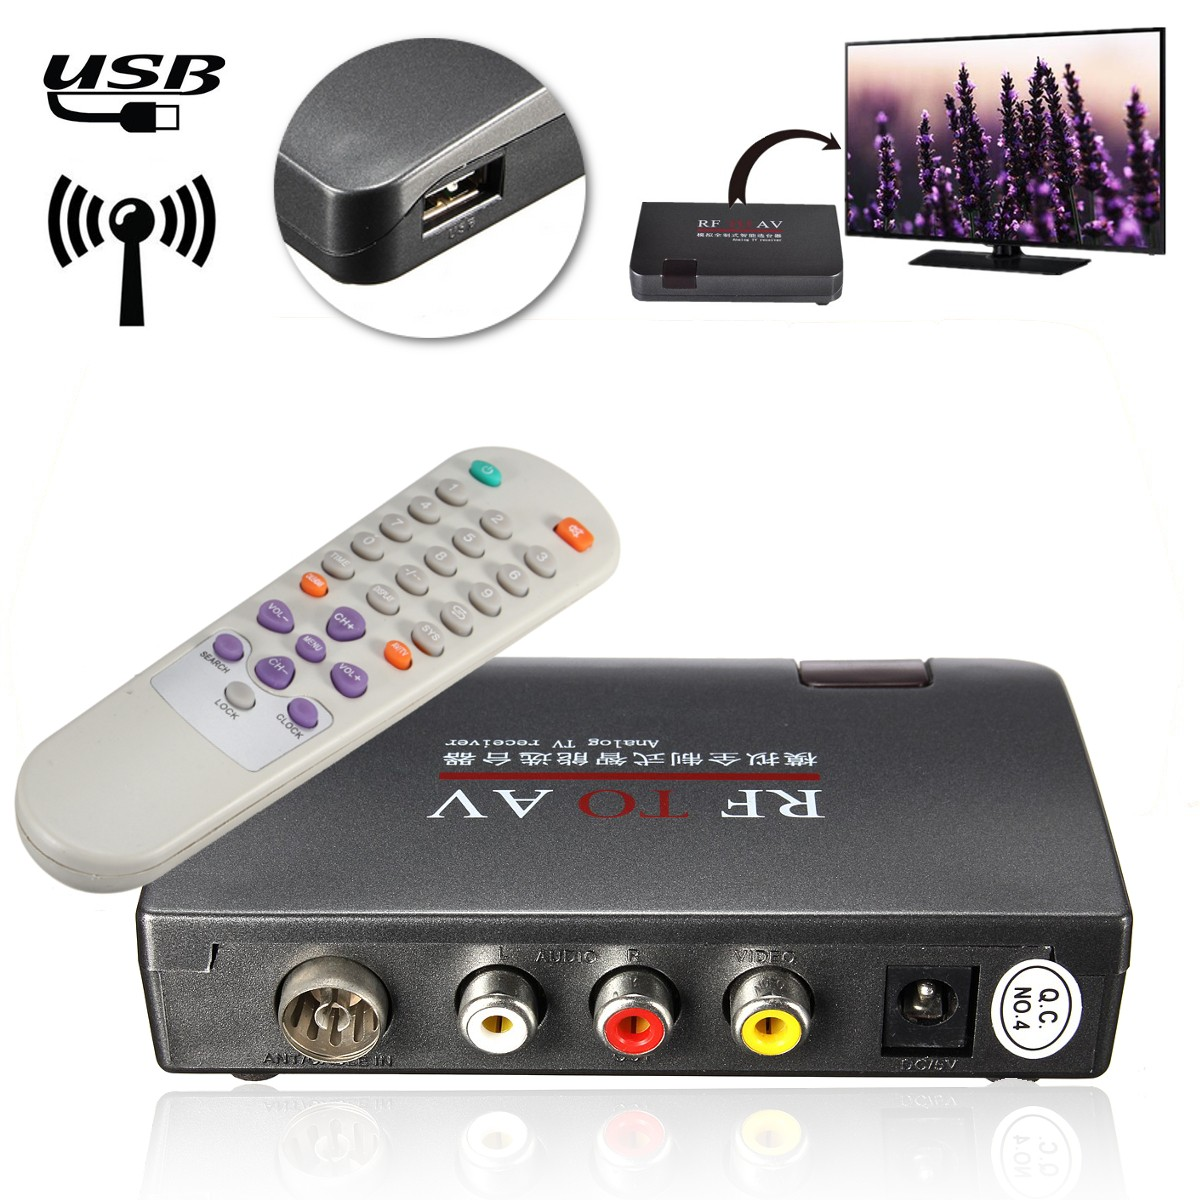 AC110V-AC240V RF TO AV Receiver RF To AV Analog Cable TV Receiver Converter USB With Remote Control Whole Rule